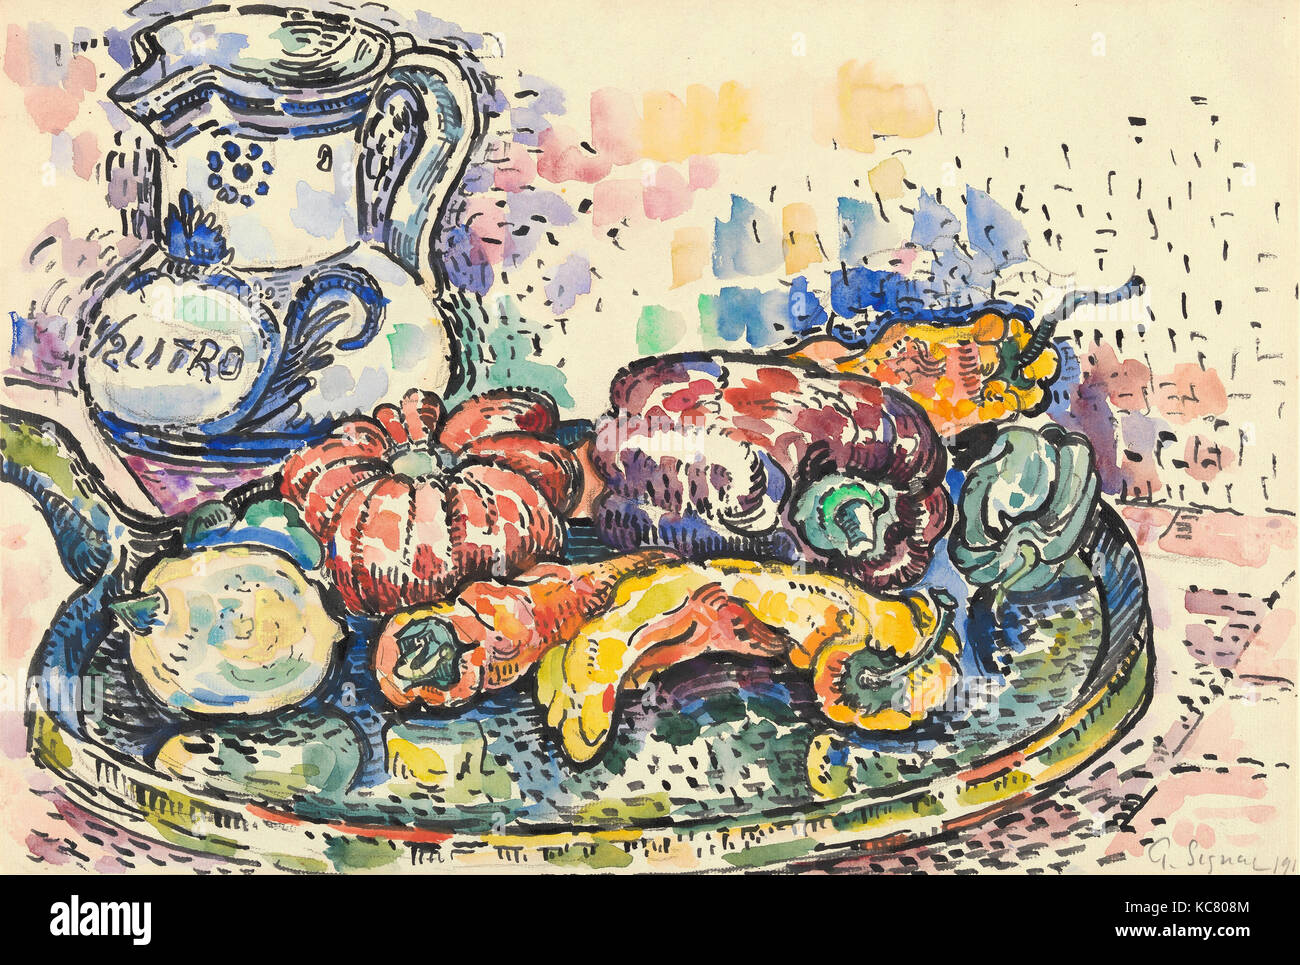 Still Life with Jug, 1919, Graphite and watercolor, 11 7/8 x 17 5/8 in. (30.2 x 44.8 cm), Drawings, Paul Signac Stock Photo